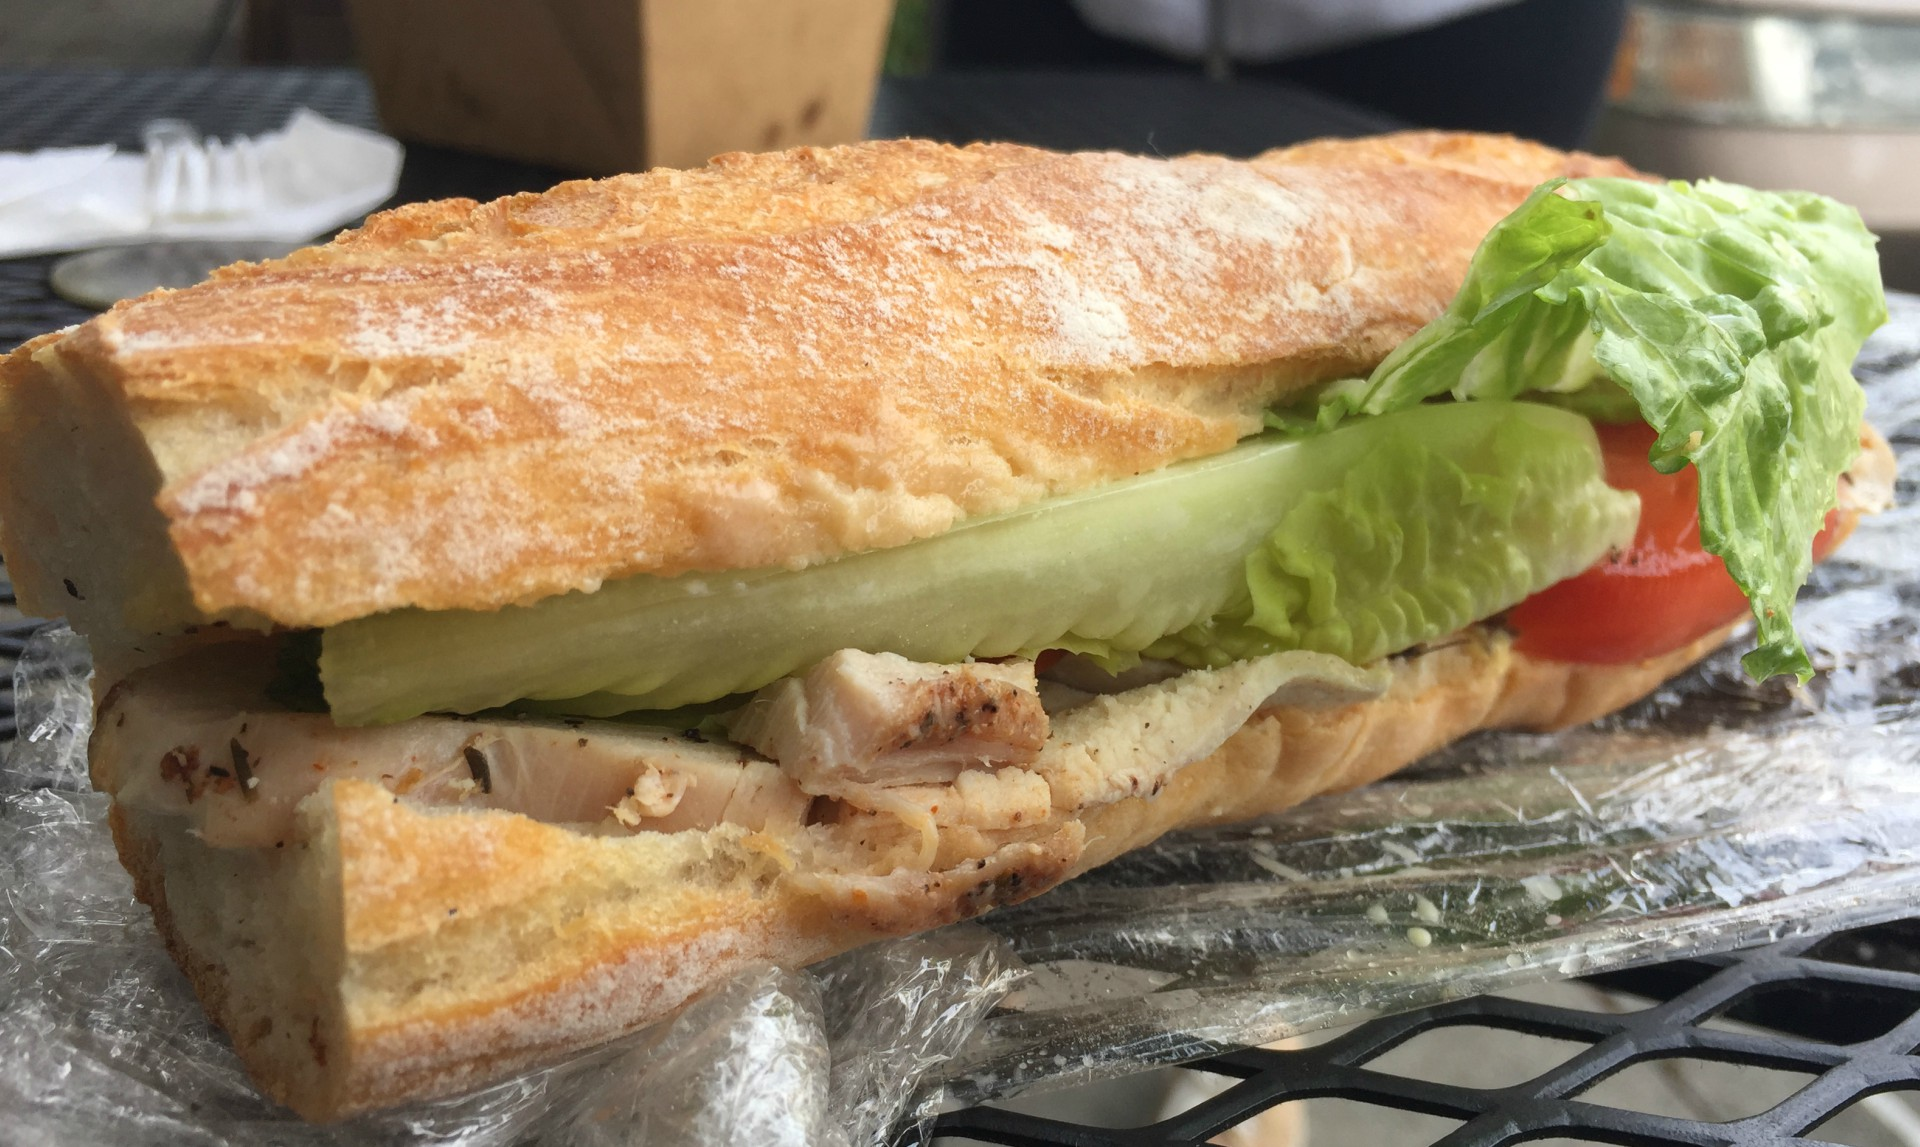 The turkey sandwich from the Juice Bar Collective.